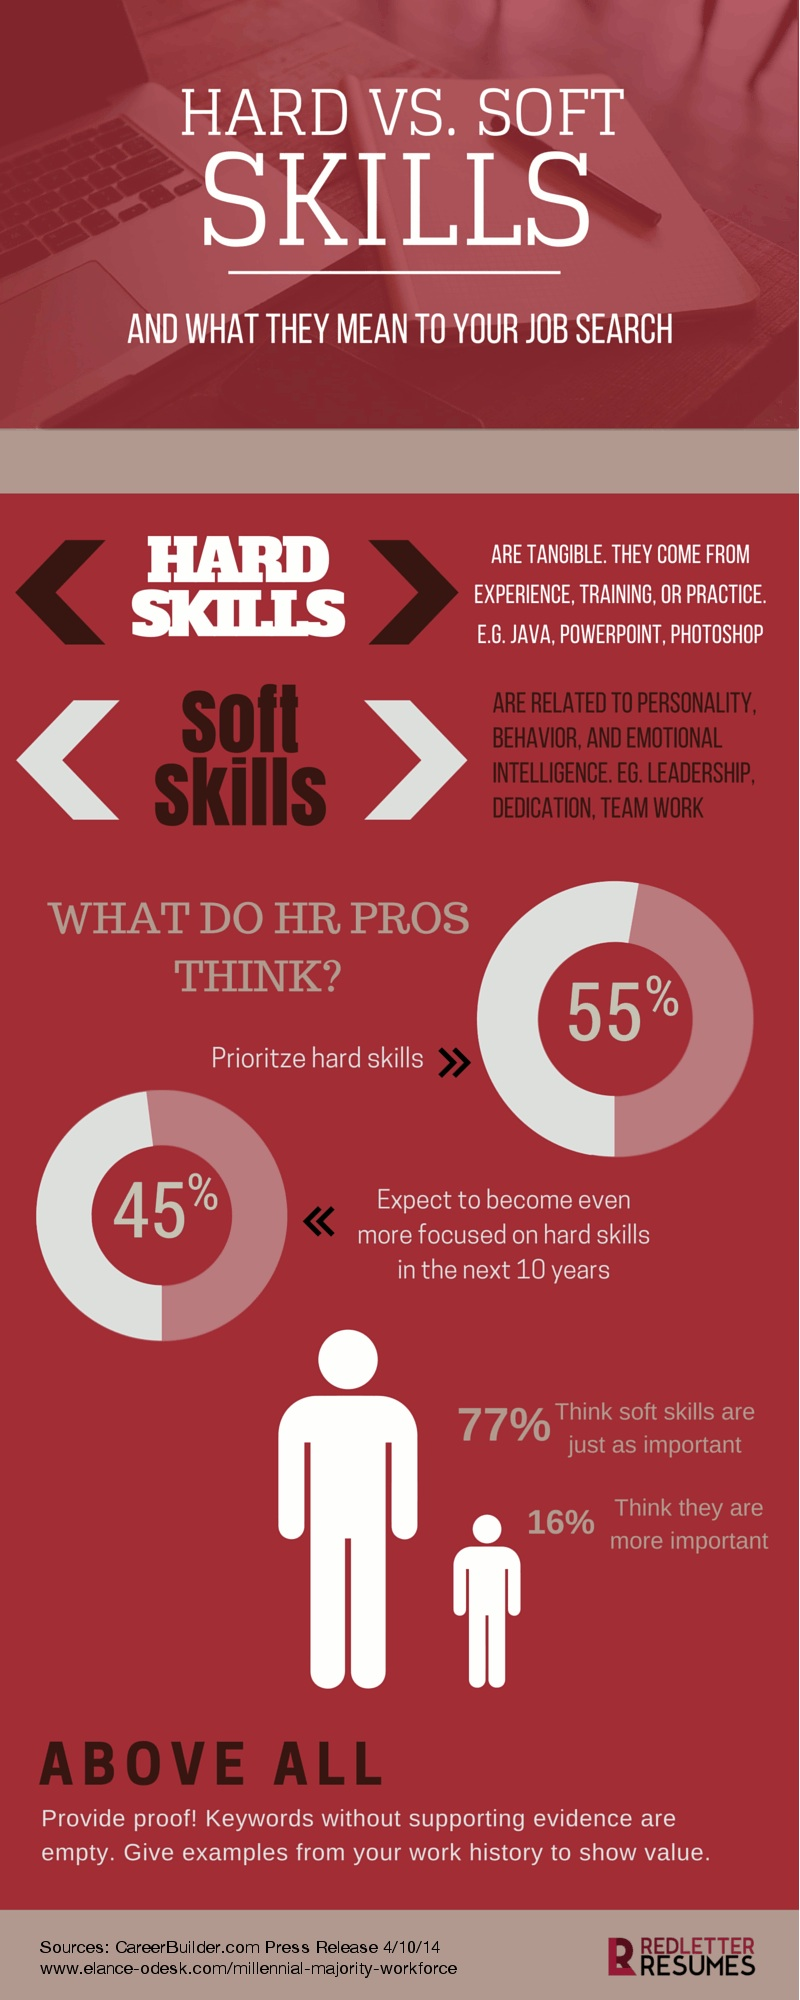 hard skills vs  soft skills  what they mean to your job search and the weight they carry with hr